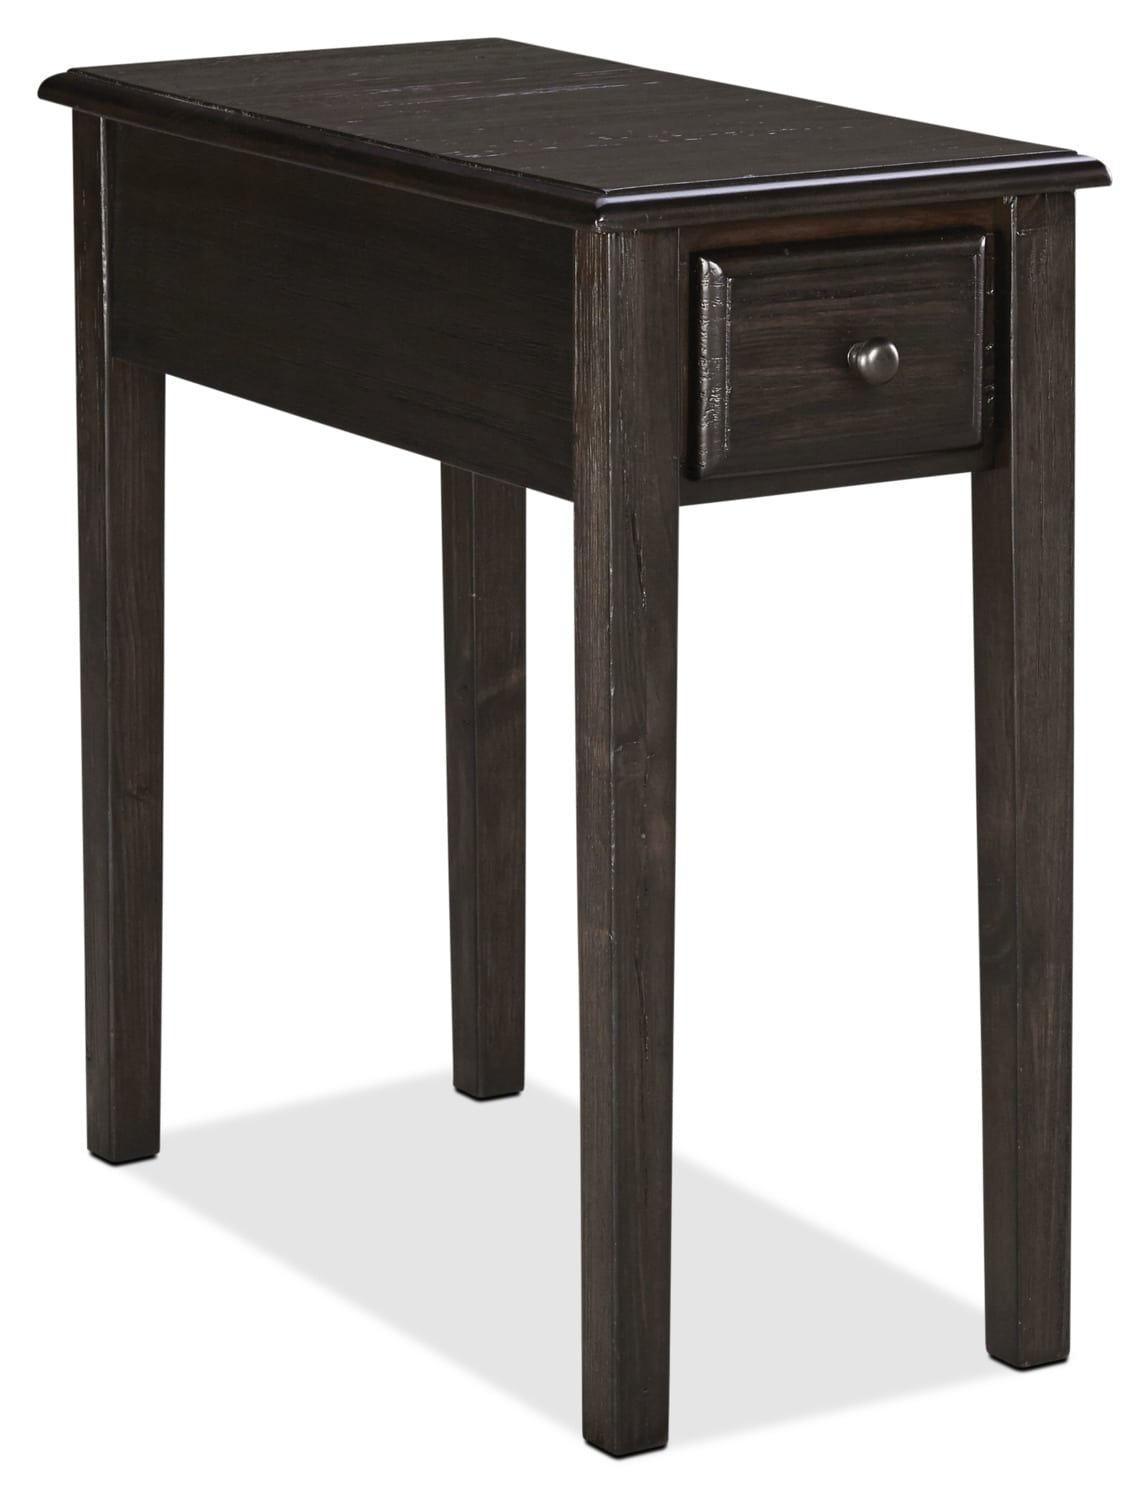 Weldon Solid Pine Accent Table – Dark Brown